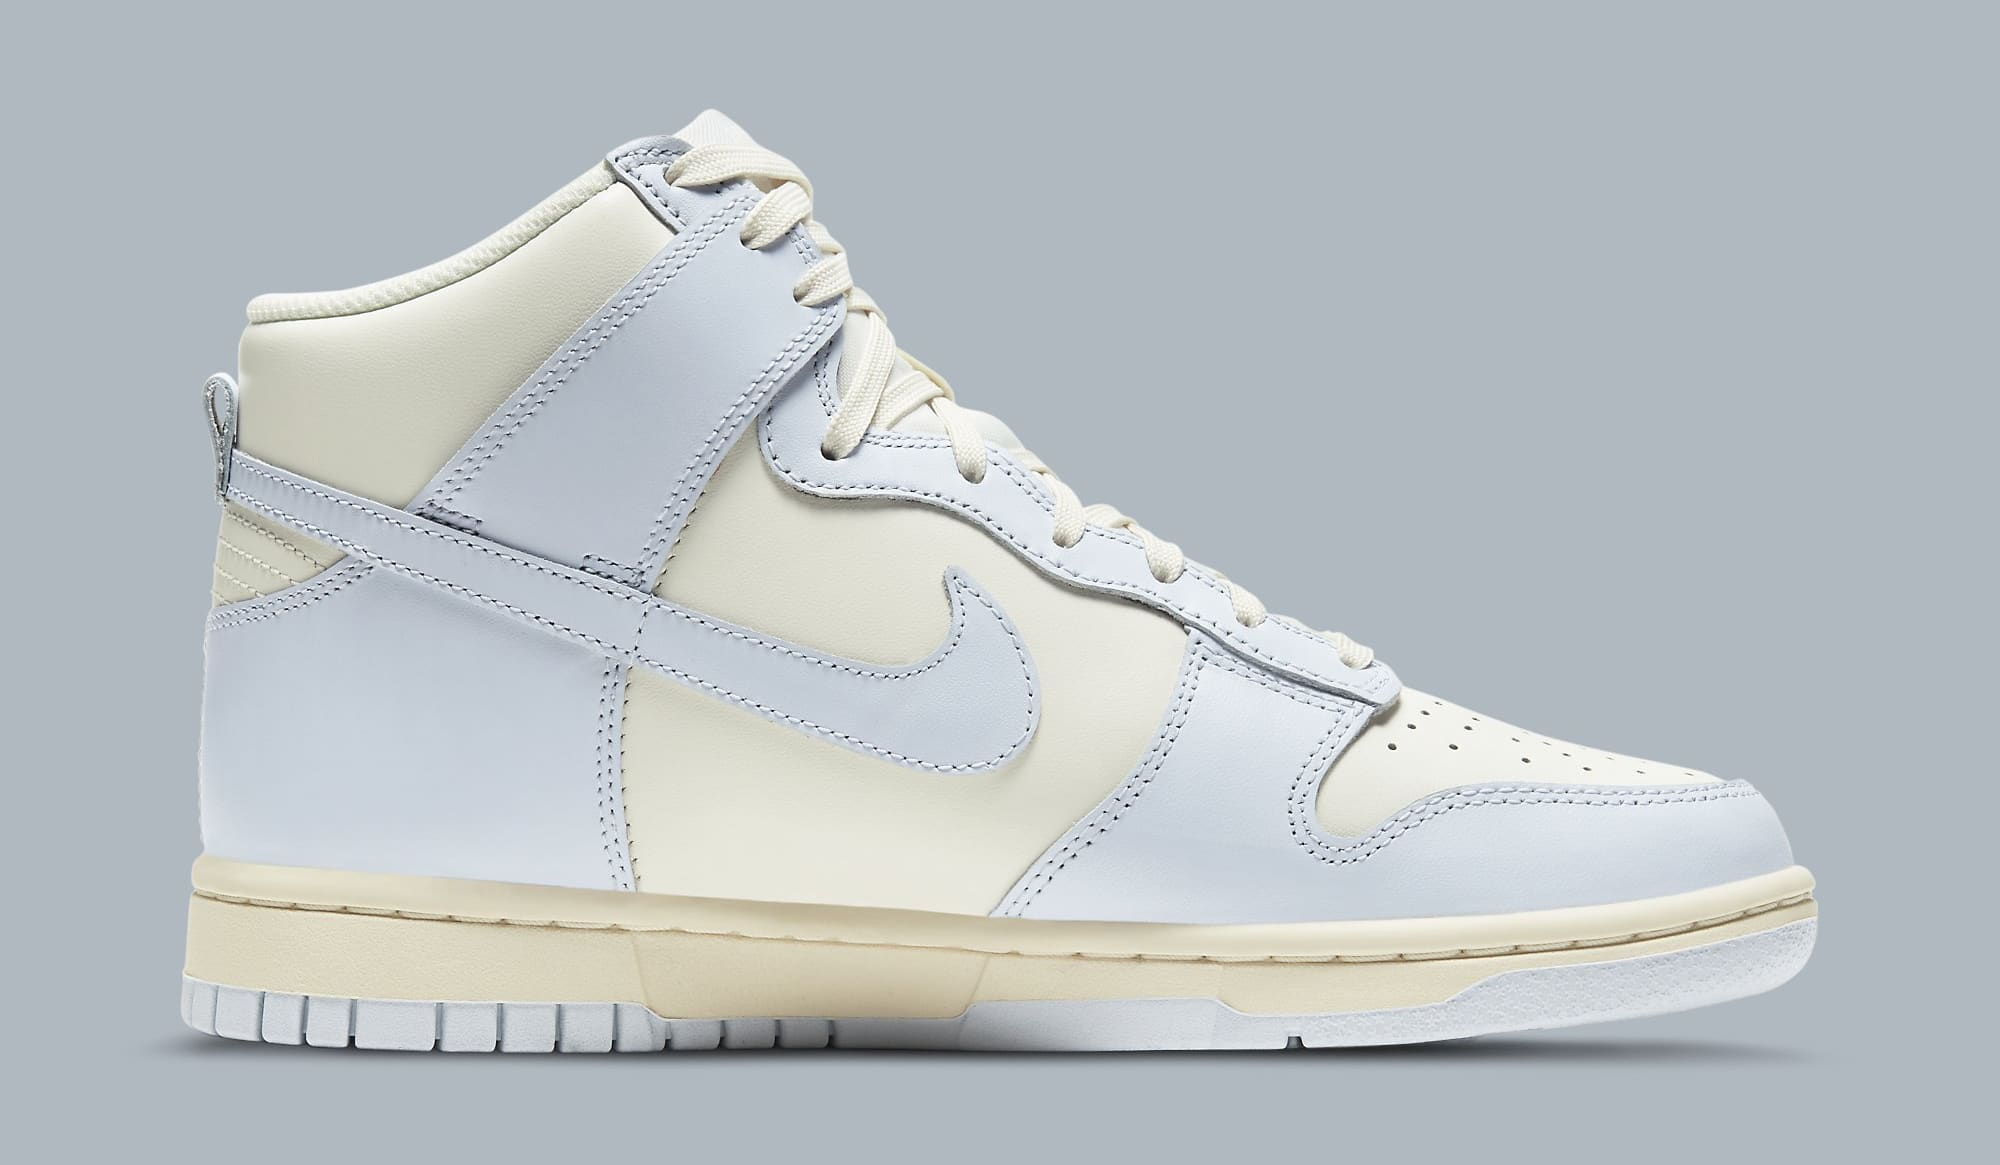 Nike Dunk High Women's 'Pale Ivory' DD1869-102 Medial